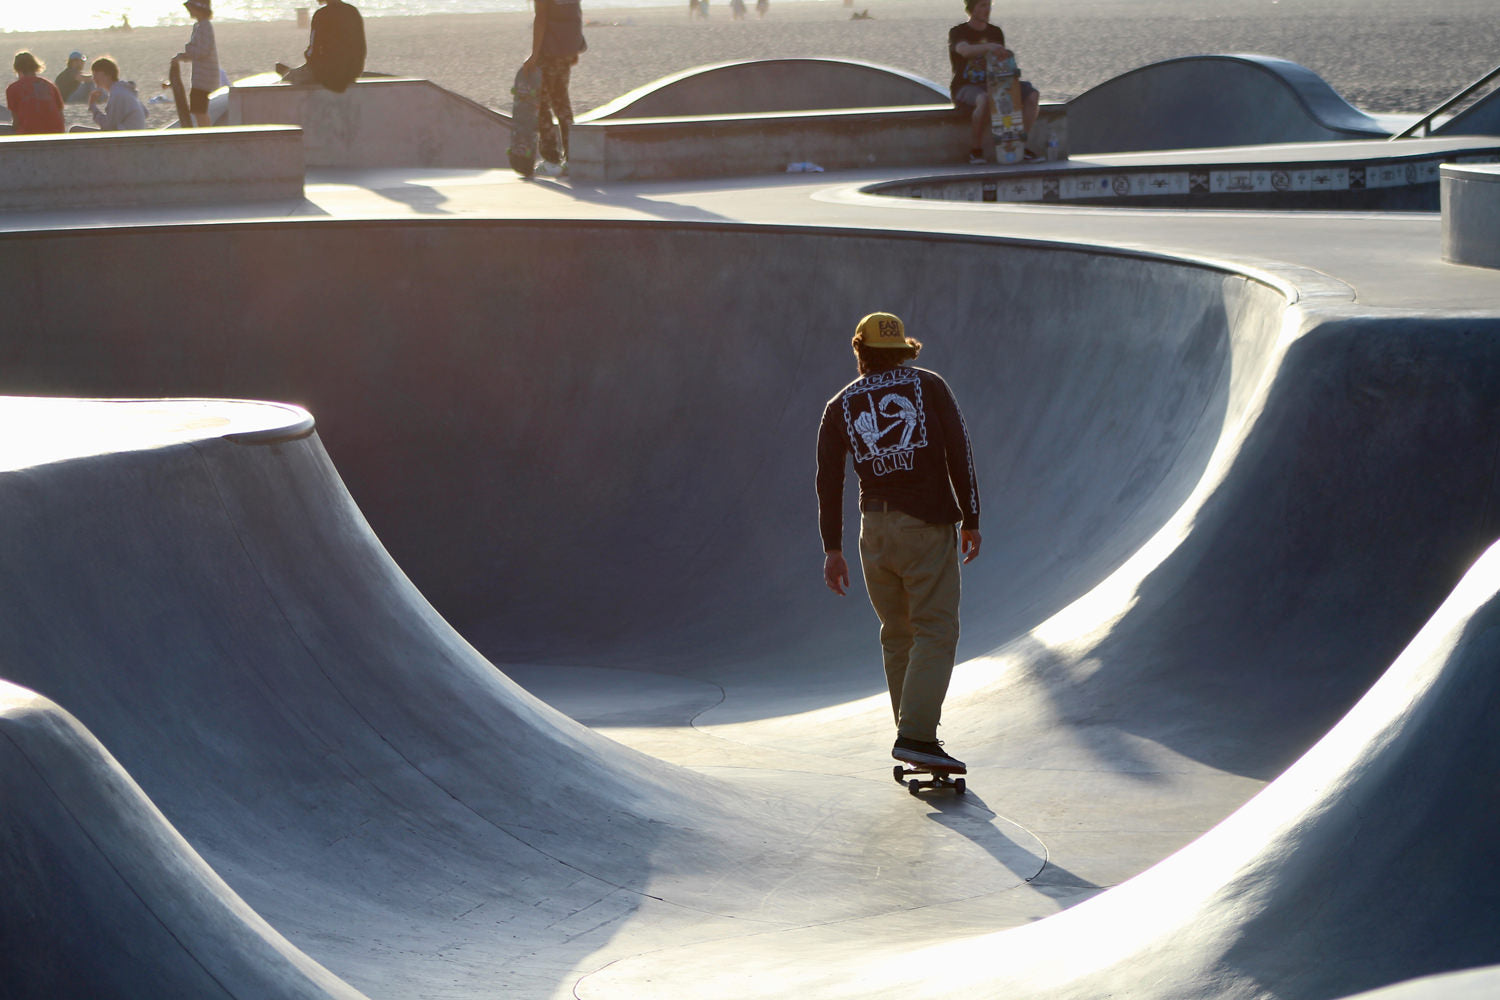 what-its-like-to-skate-venice-beach-skateboarding-longboarding-photo-3